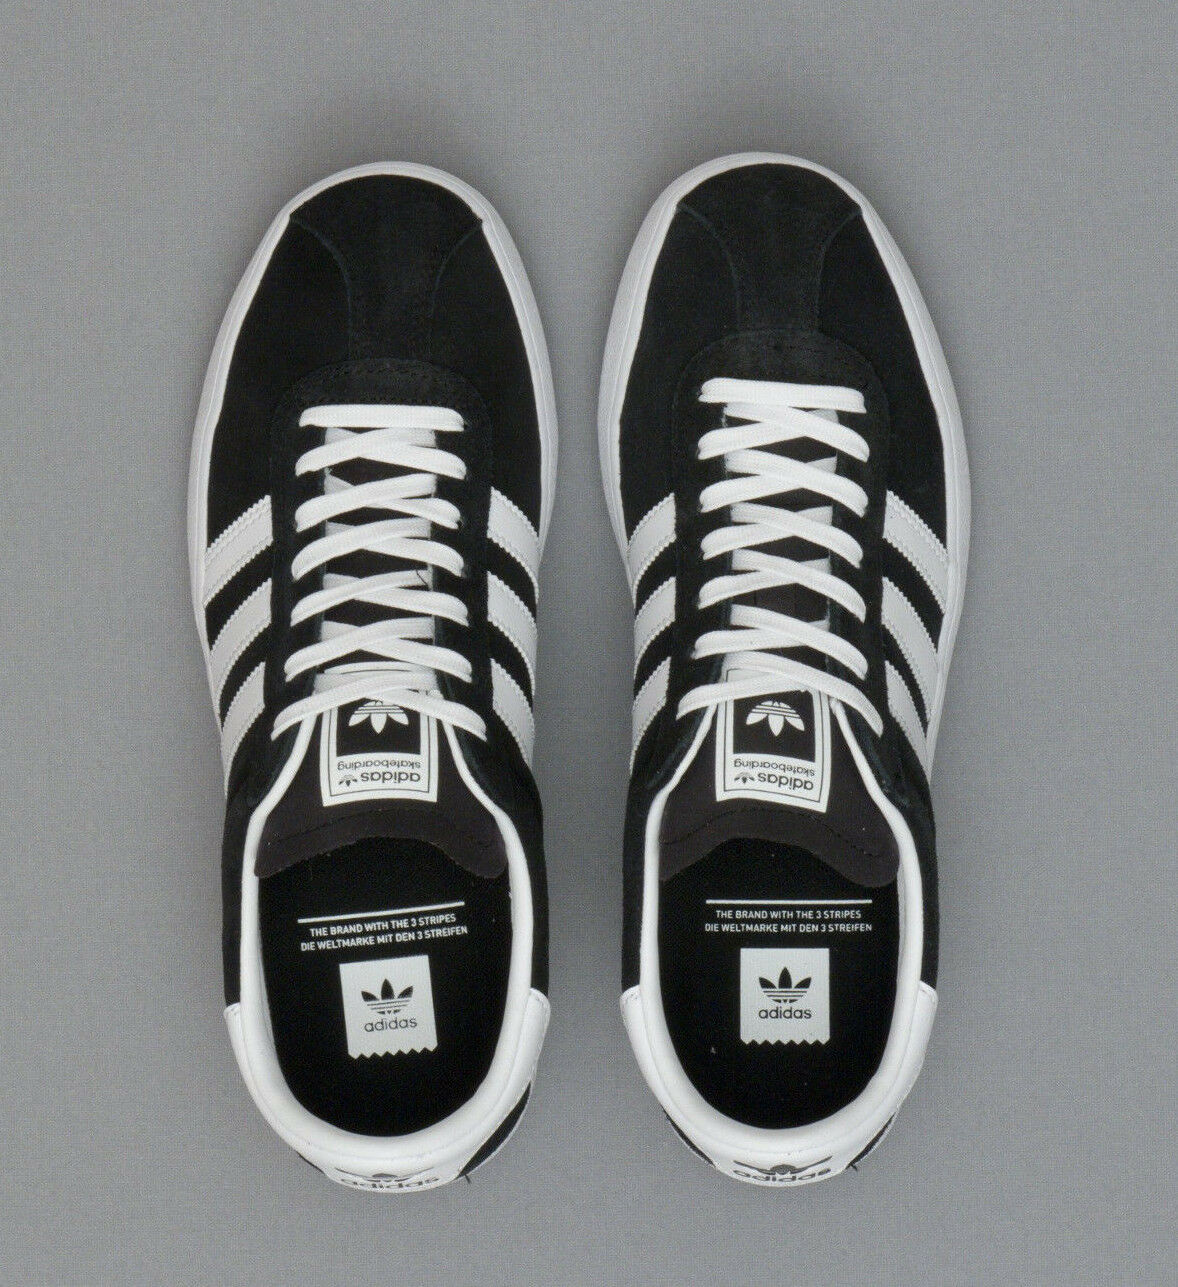 Adidas Black Originals Skate ADV Black Adidas White Sneakers BB8713 NEW f833ec